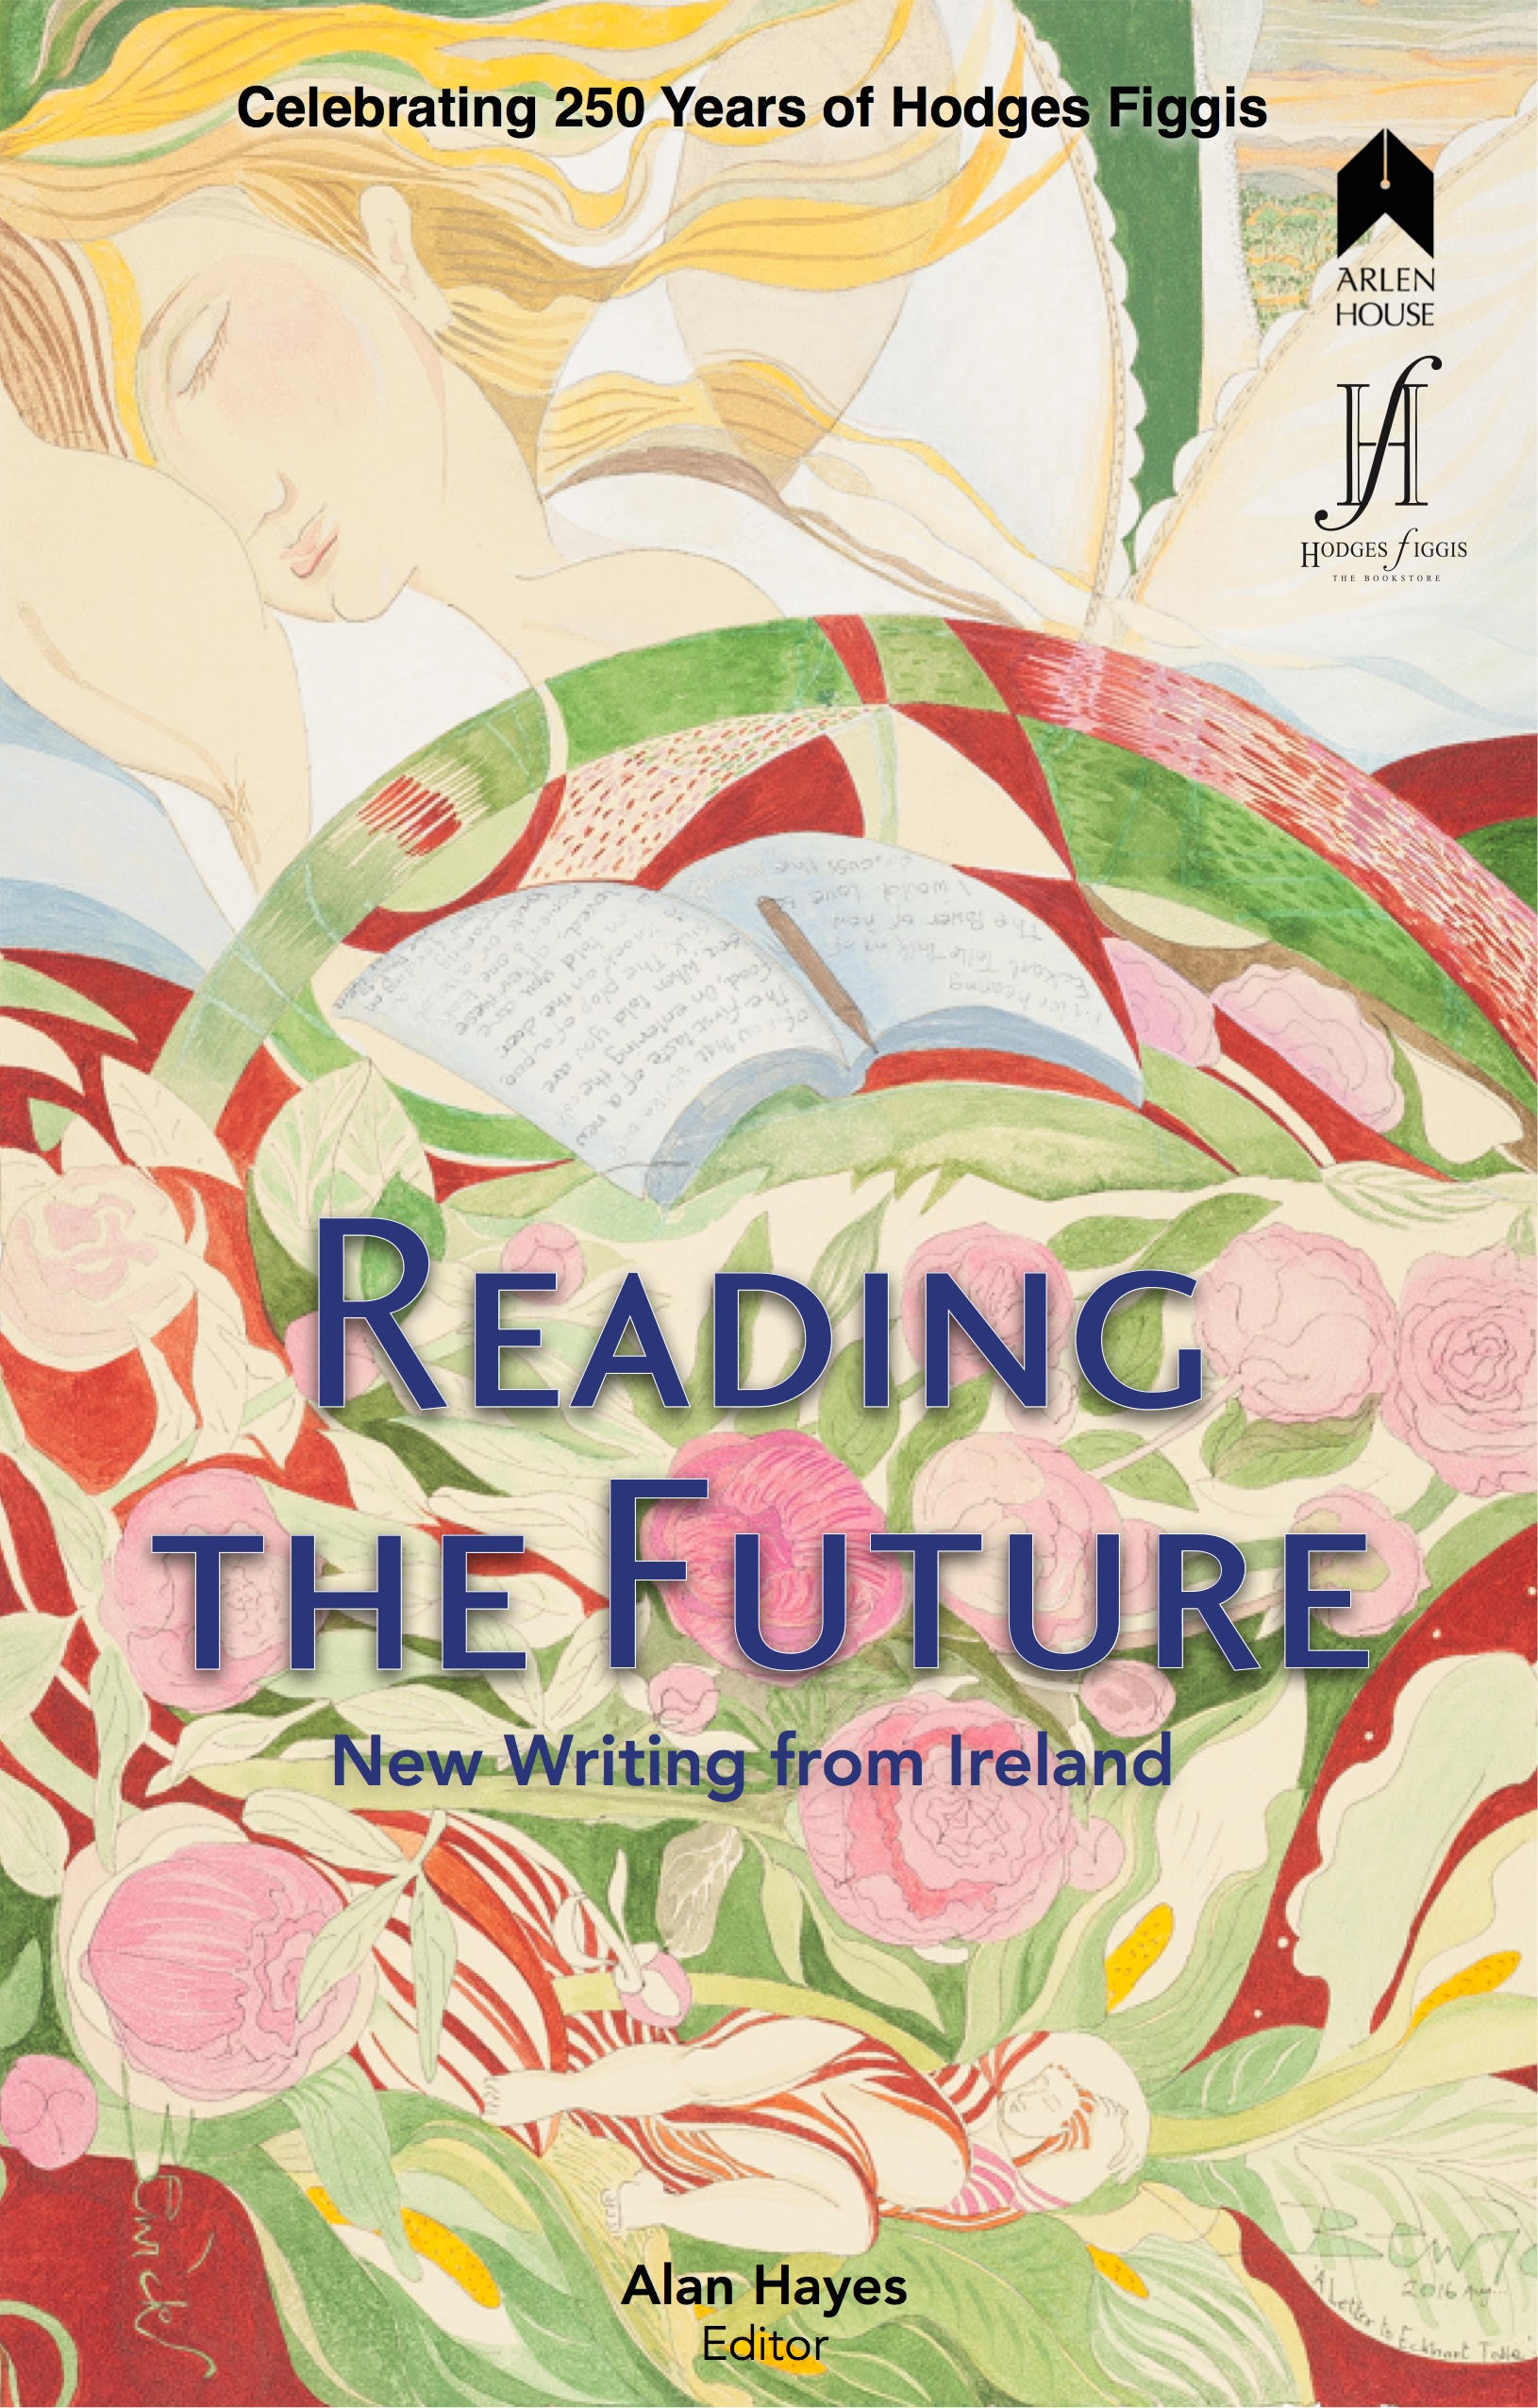 Reading the Future: New Writing from Ireland